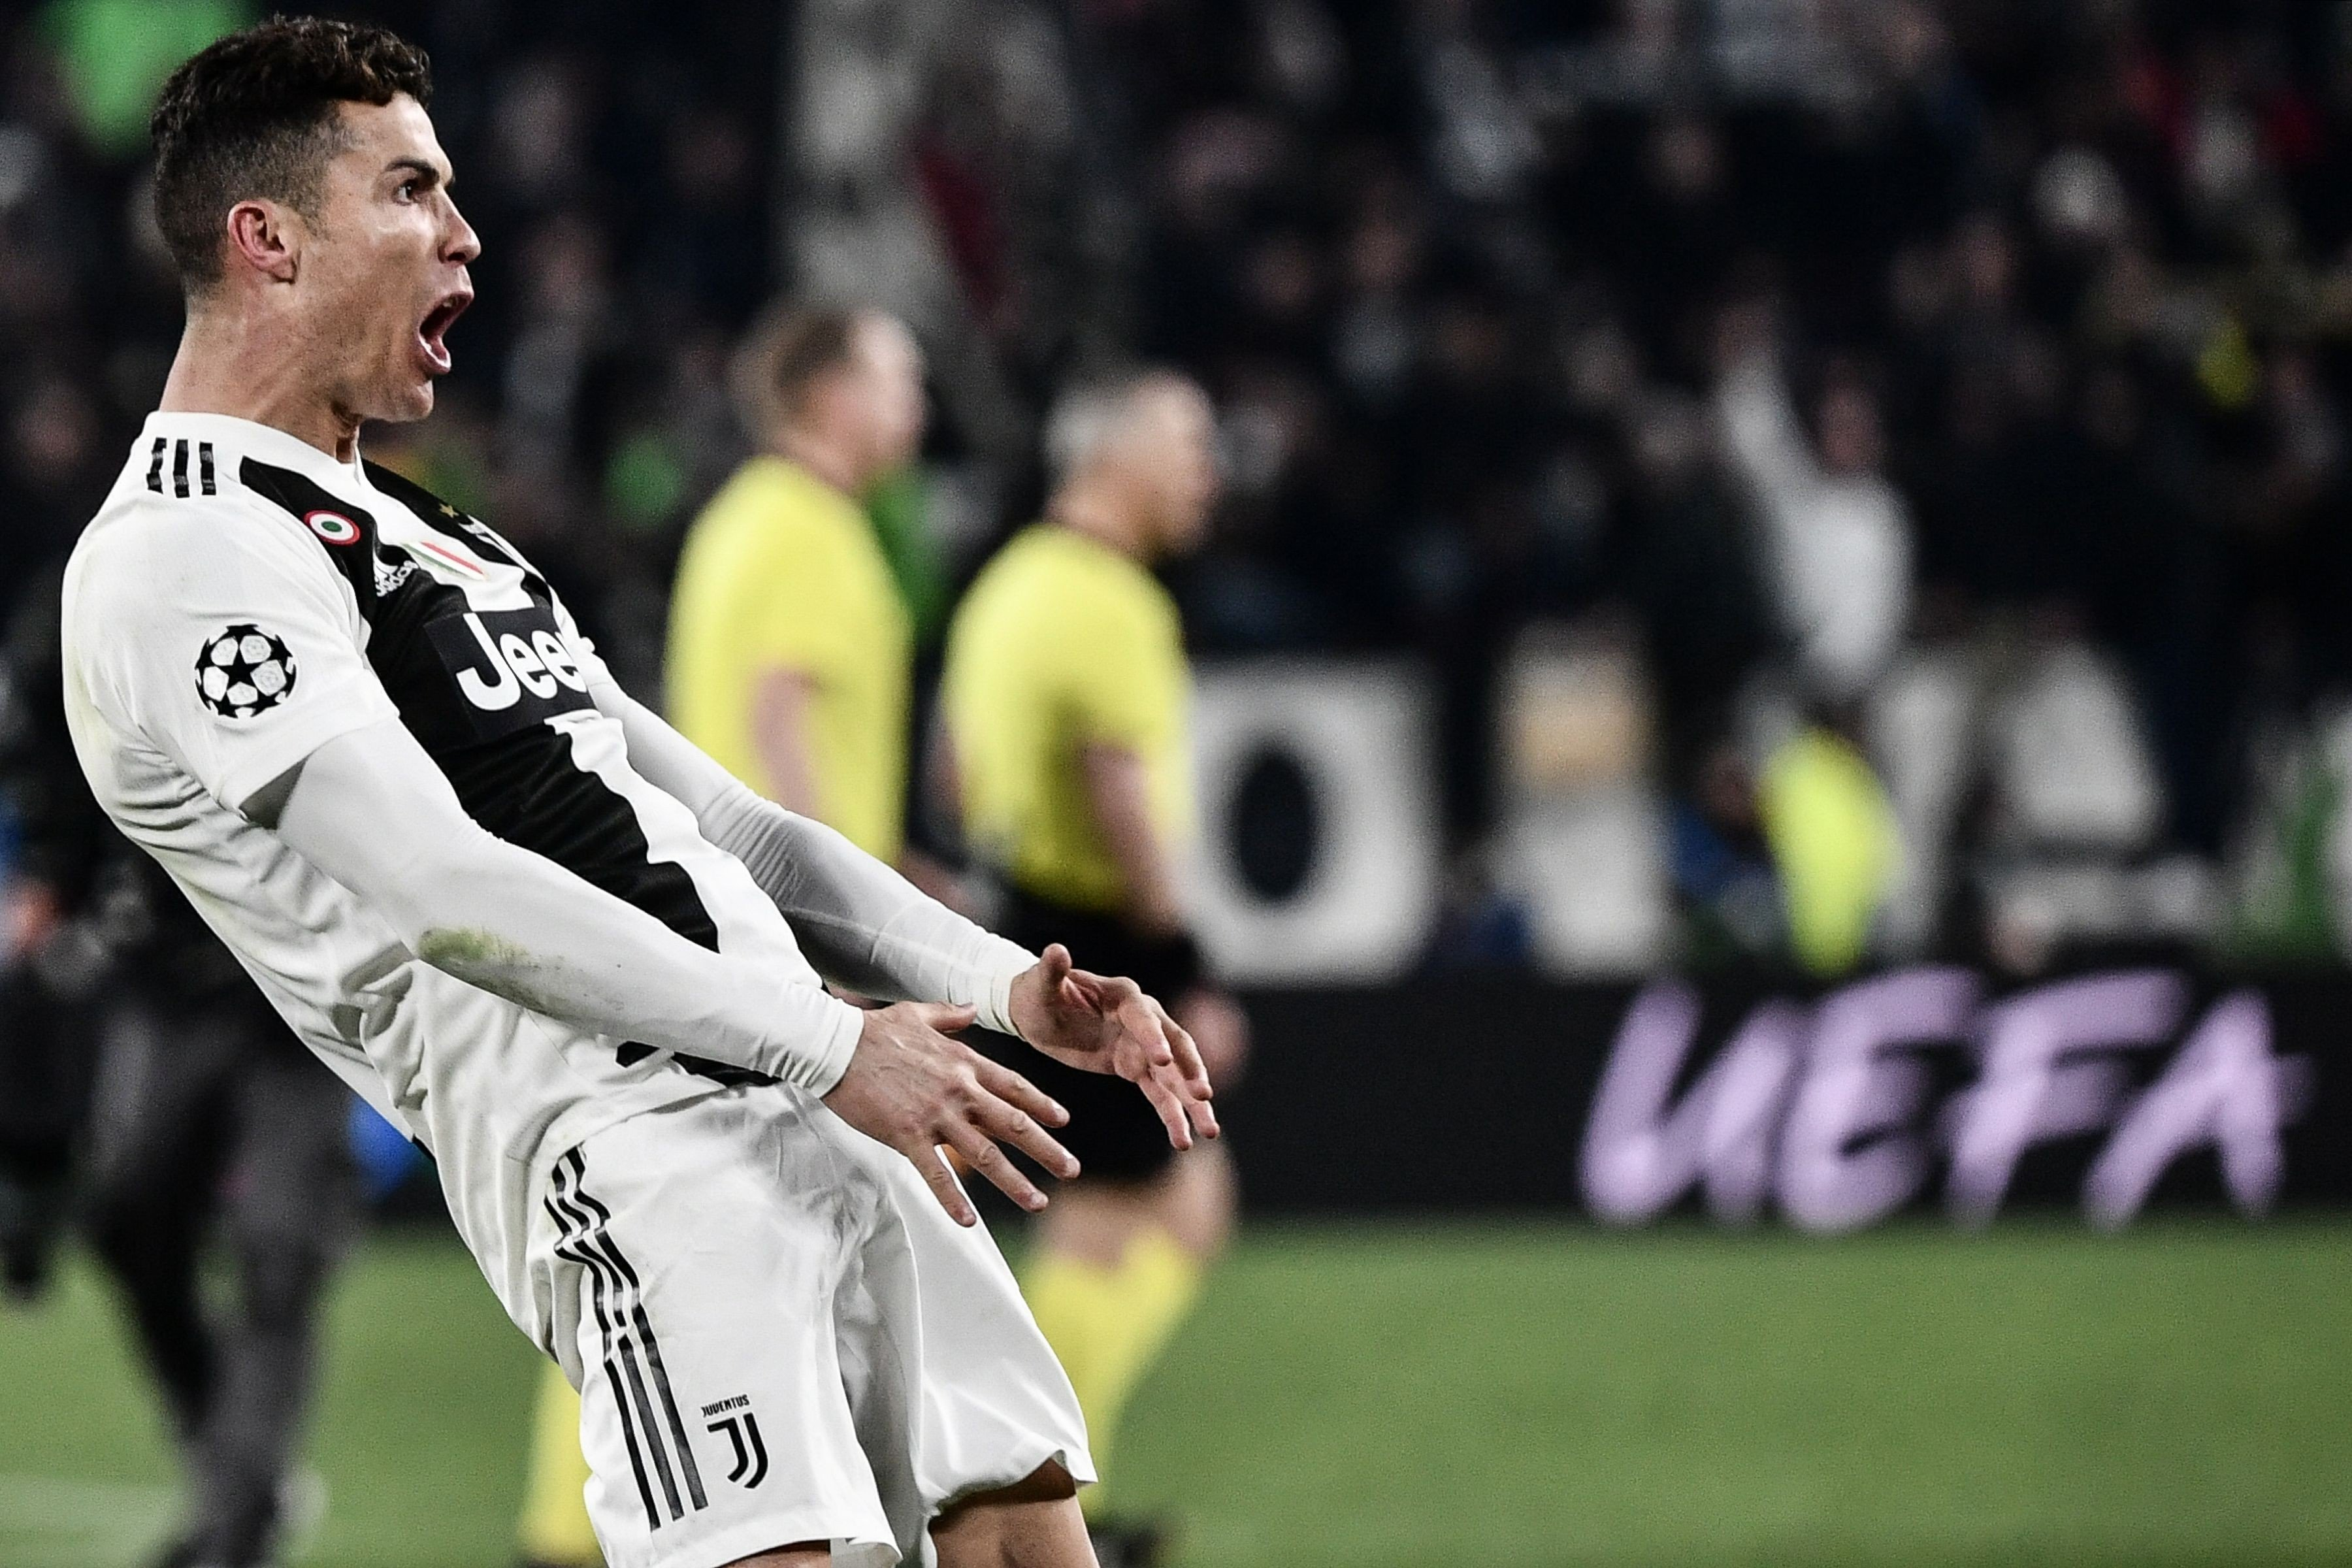 d6062be71b2 Cristiano Ronaldo s hat-trick celebration trolls Diego Simeone but could land  him in hot water